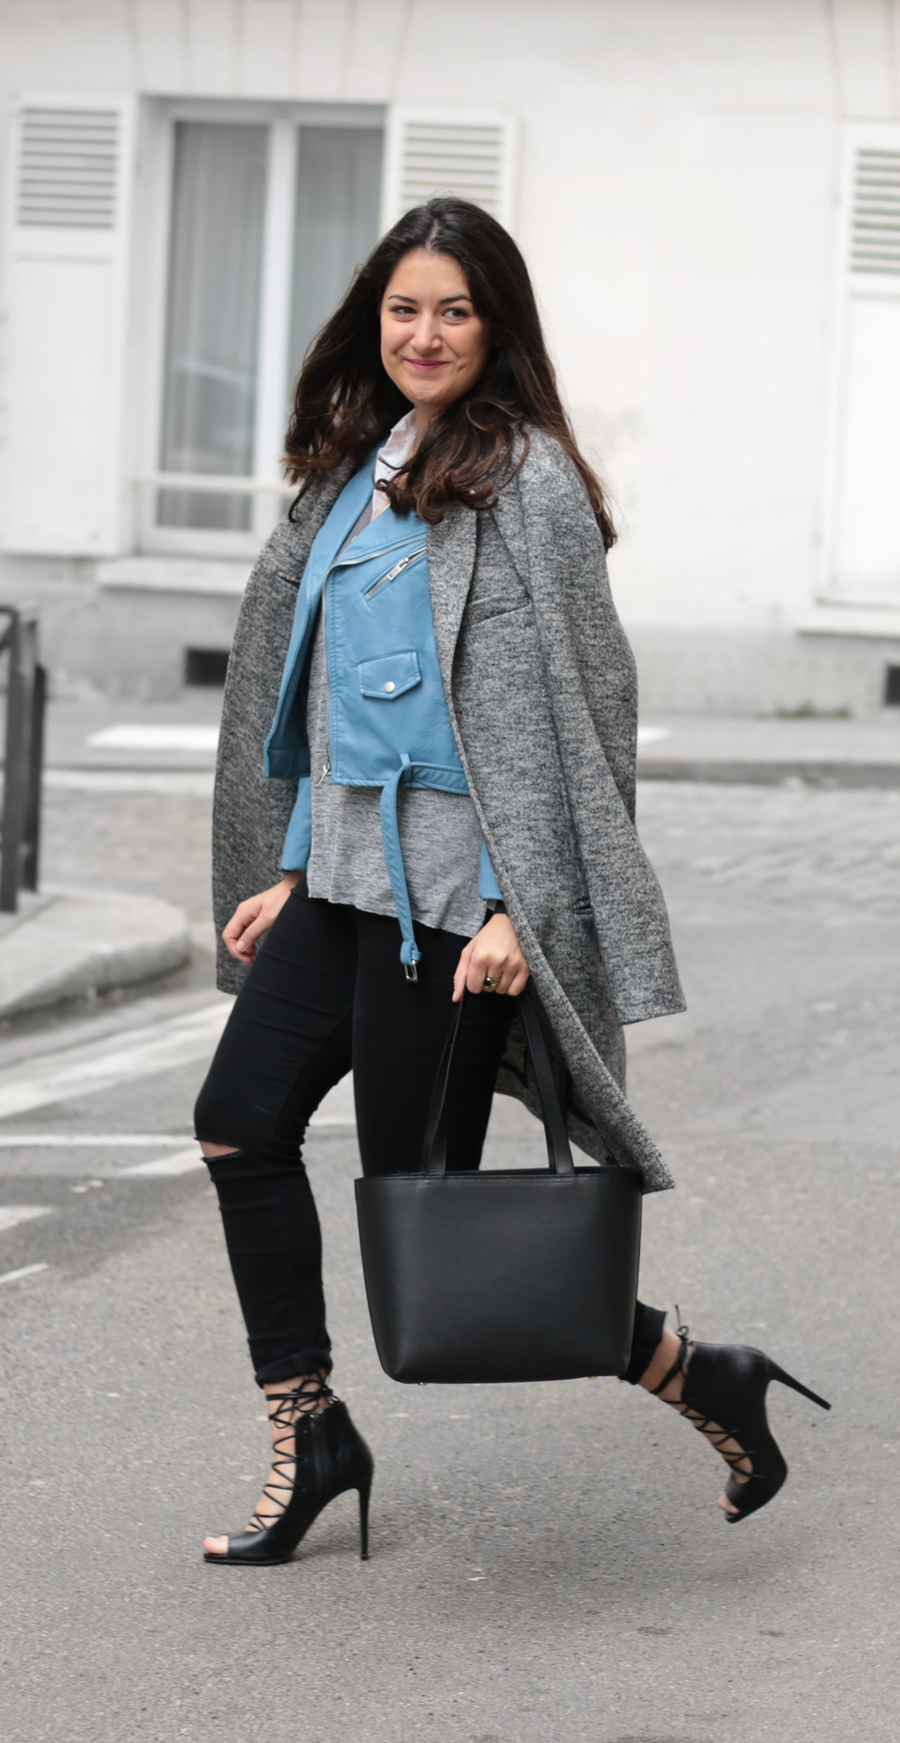 Perfecto bleu + long coat meganvlt